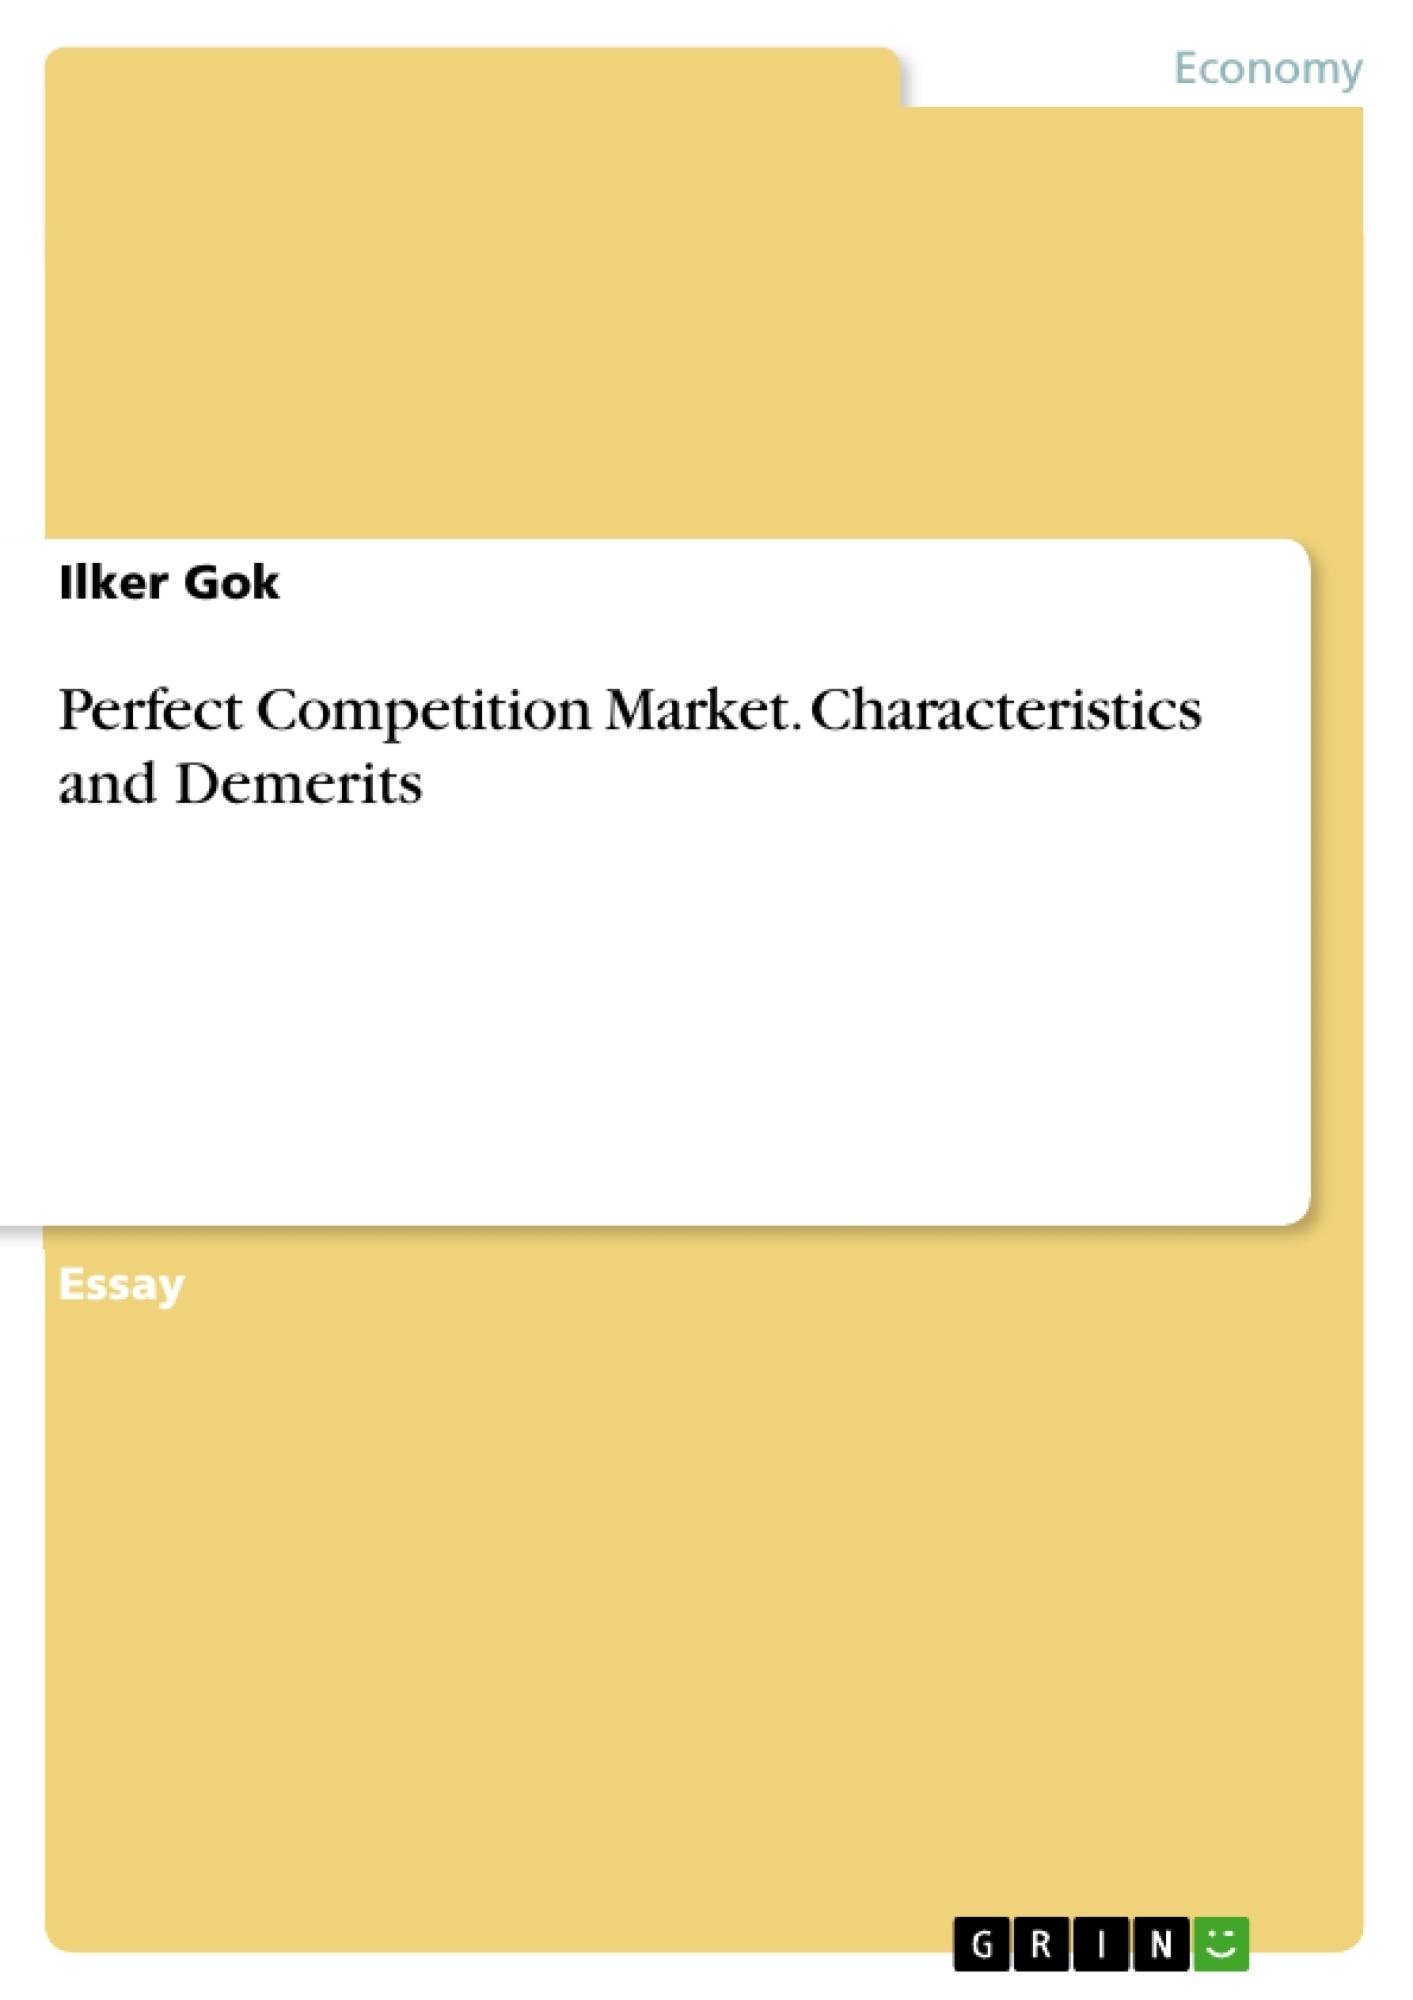 Title: Perfect Competition Market. Characteristics and Demerits